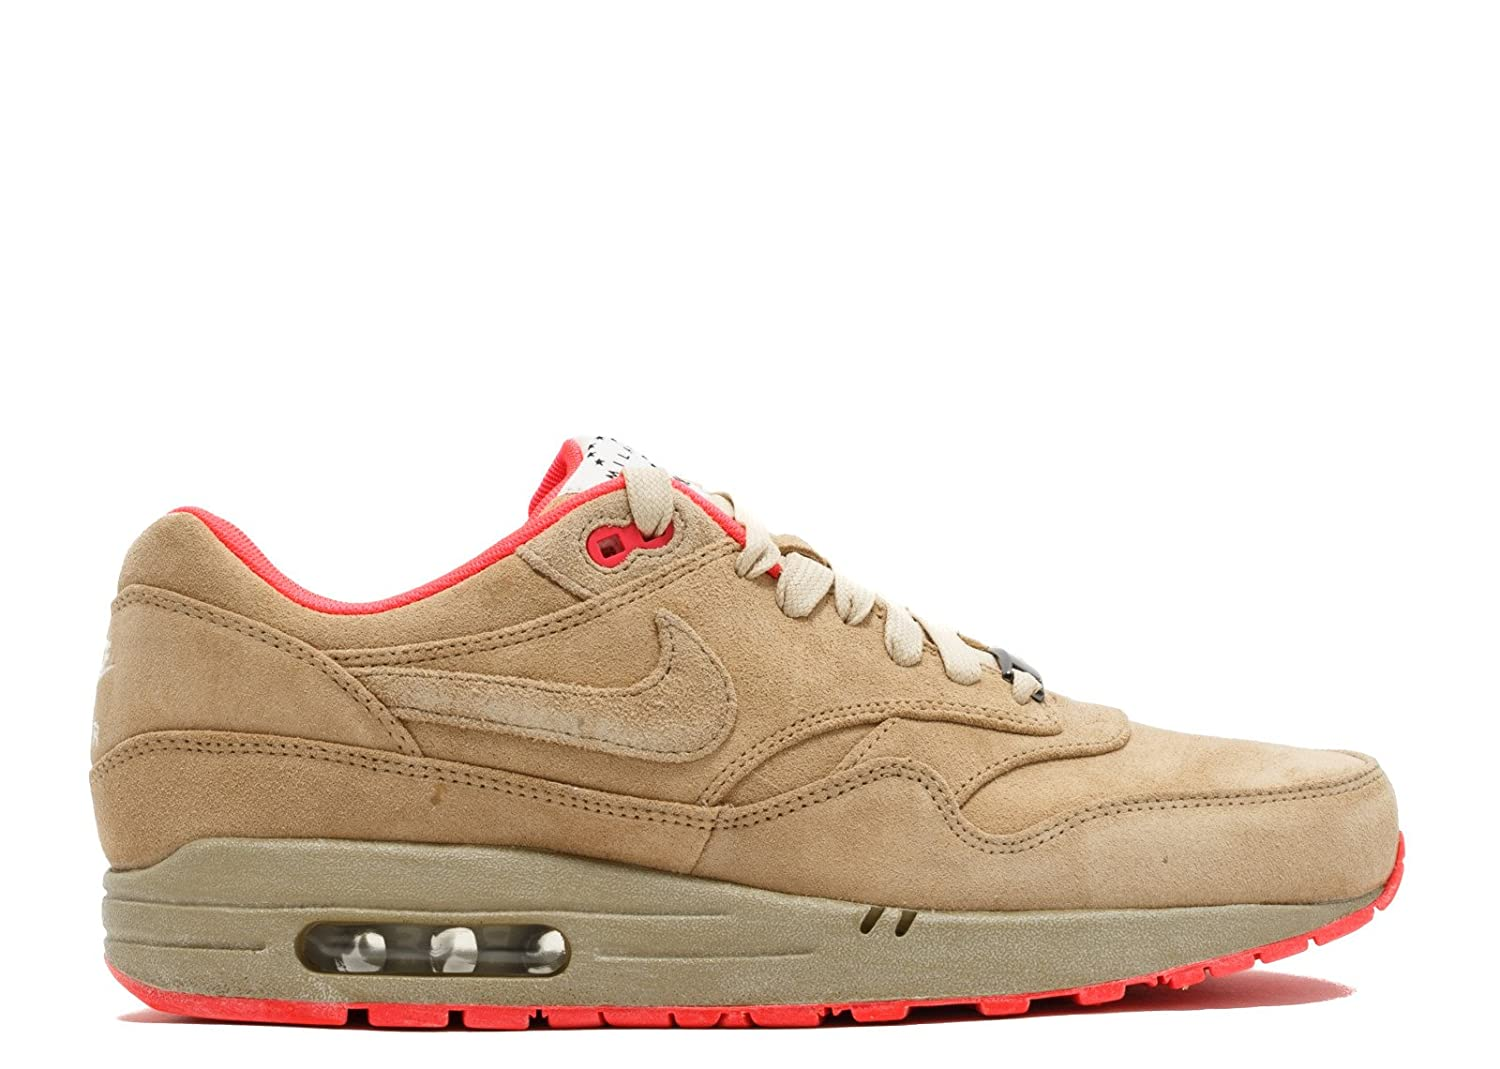 NIKE Air Max 1 Milan QS (Hometurf Series) - Linen  Amazon.co.uk  Shoes    Bags c3d7bfb2aaf